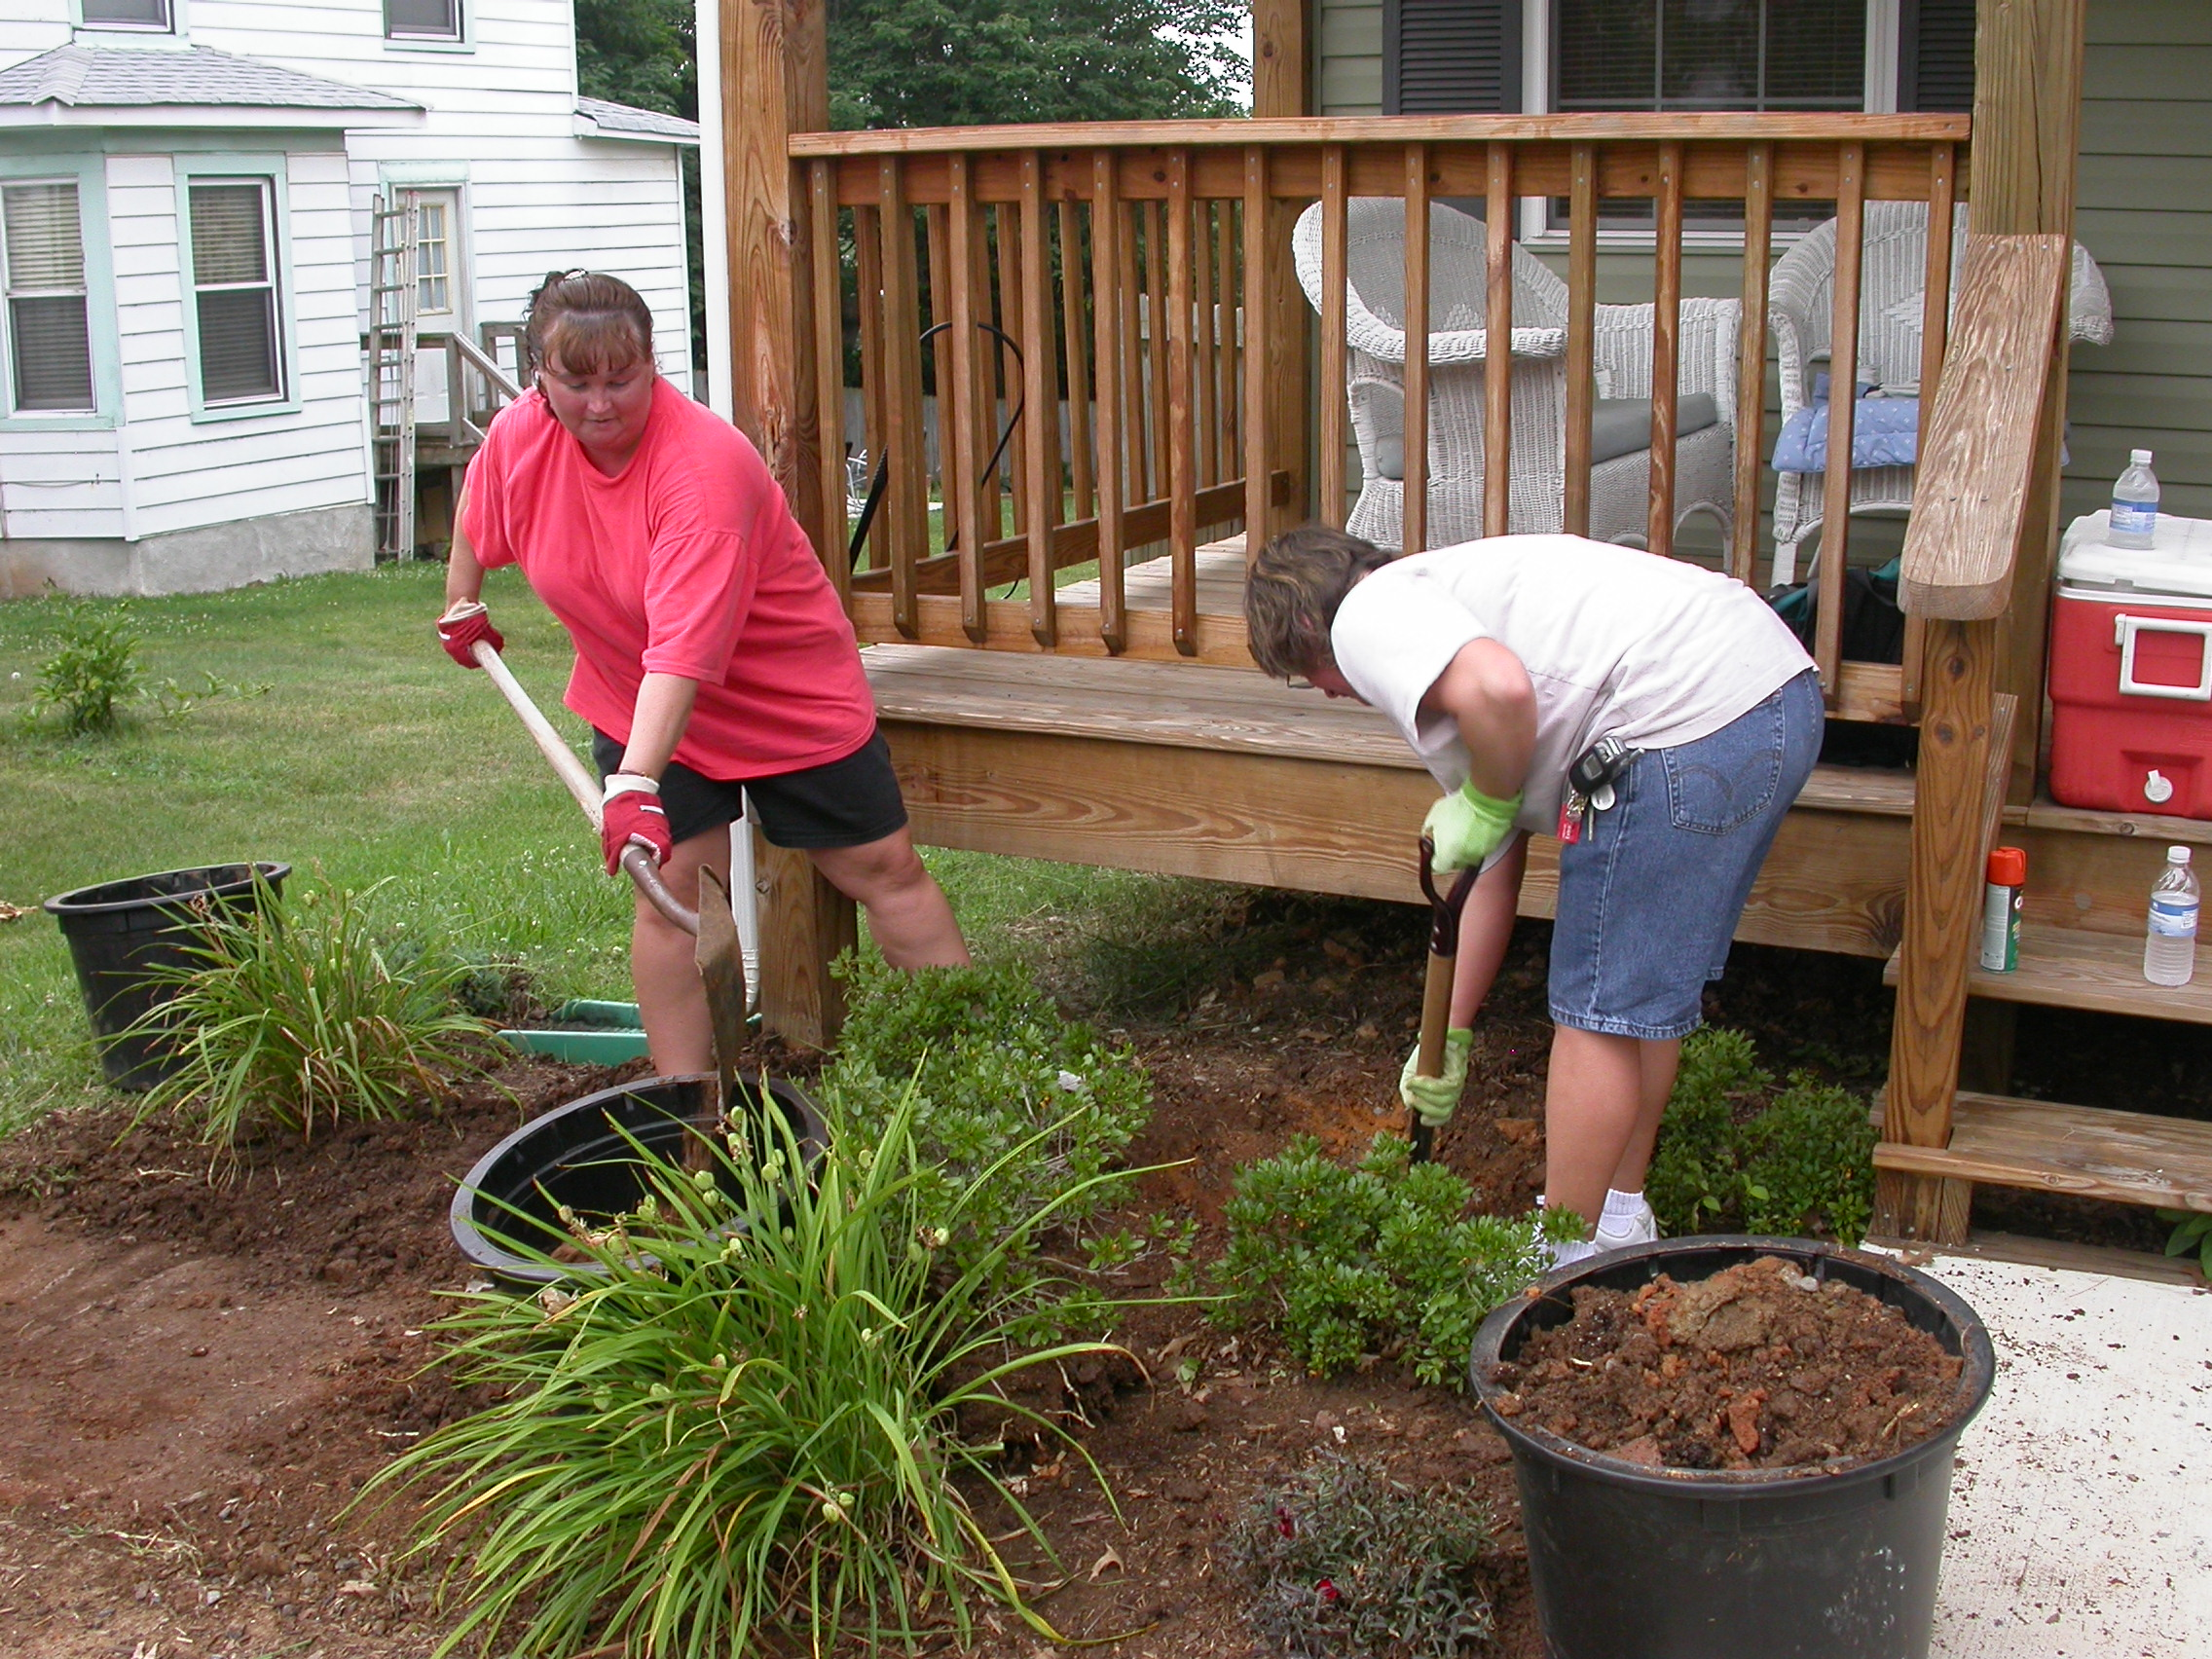 Two volunteers planting bushes in front of a Rush Homes property's front porch.